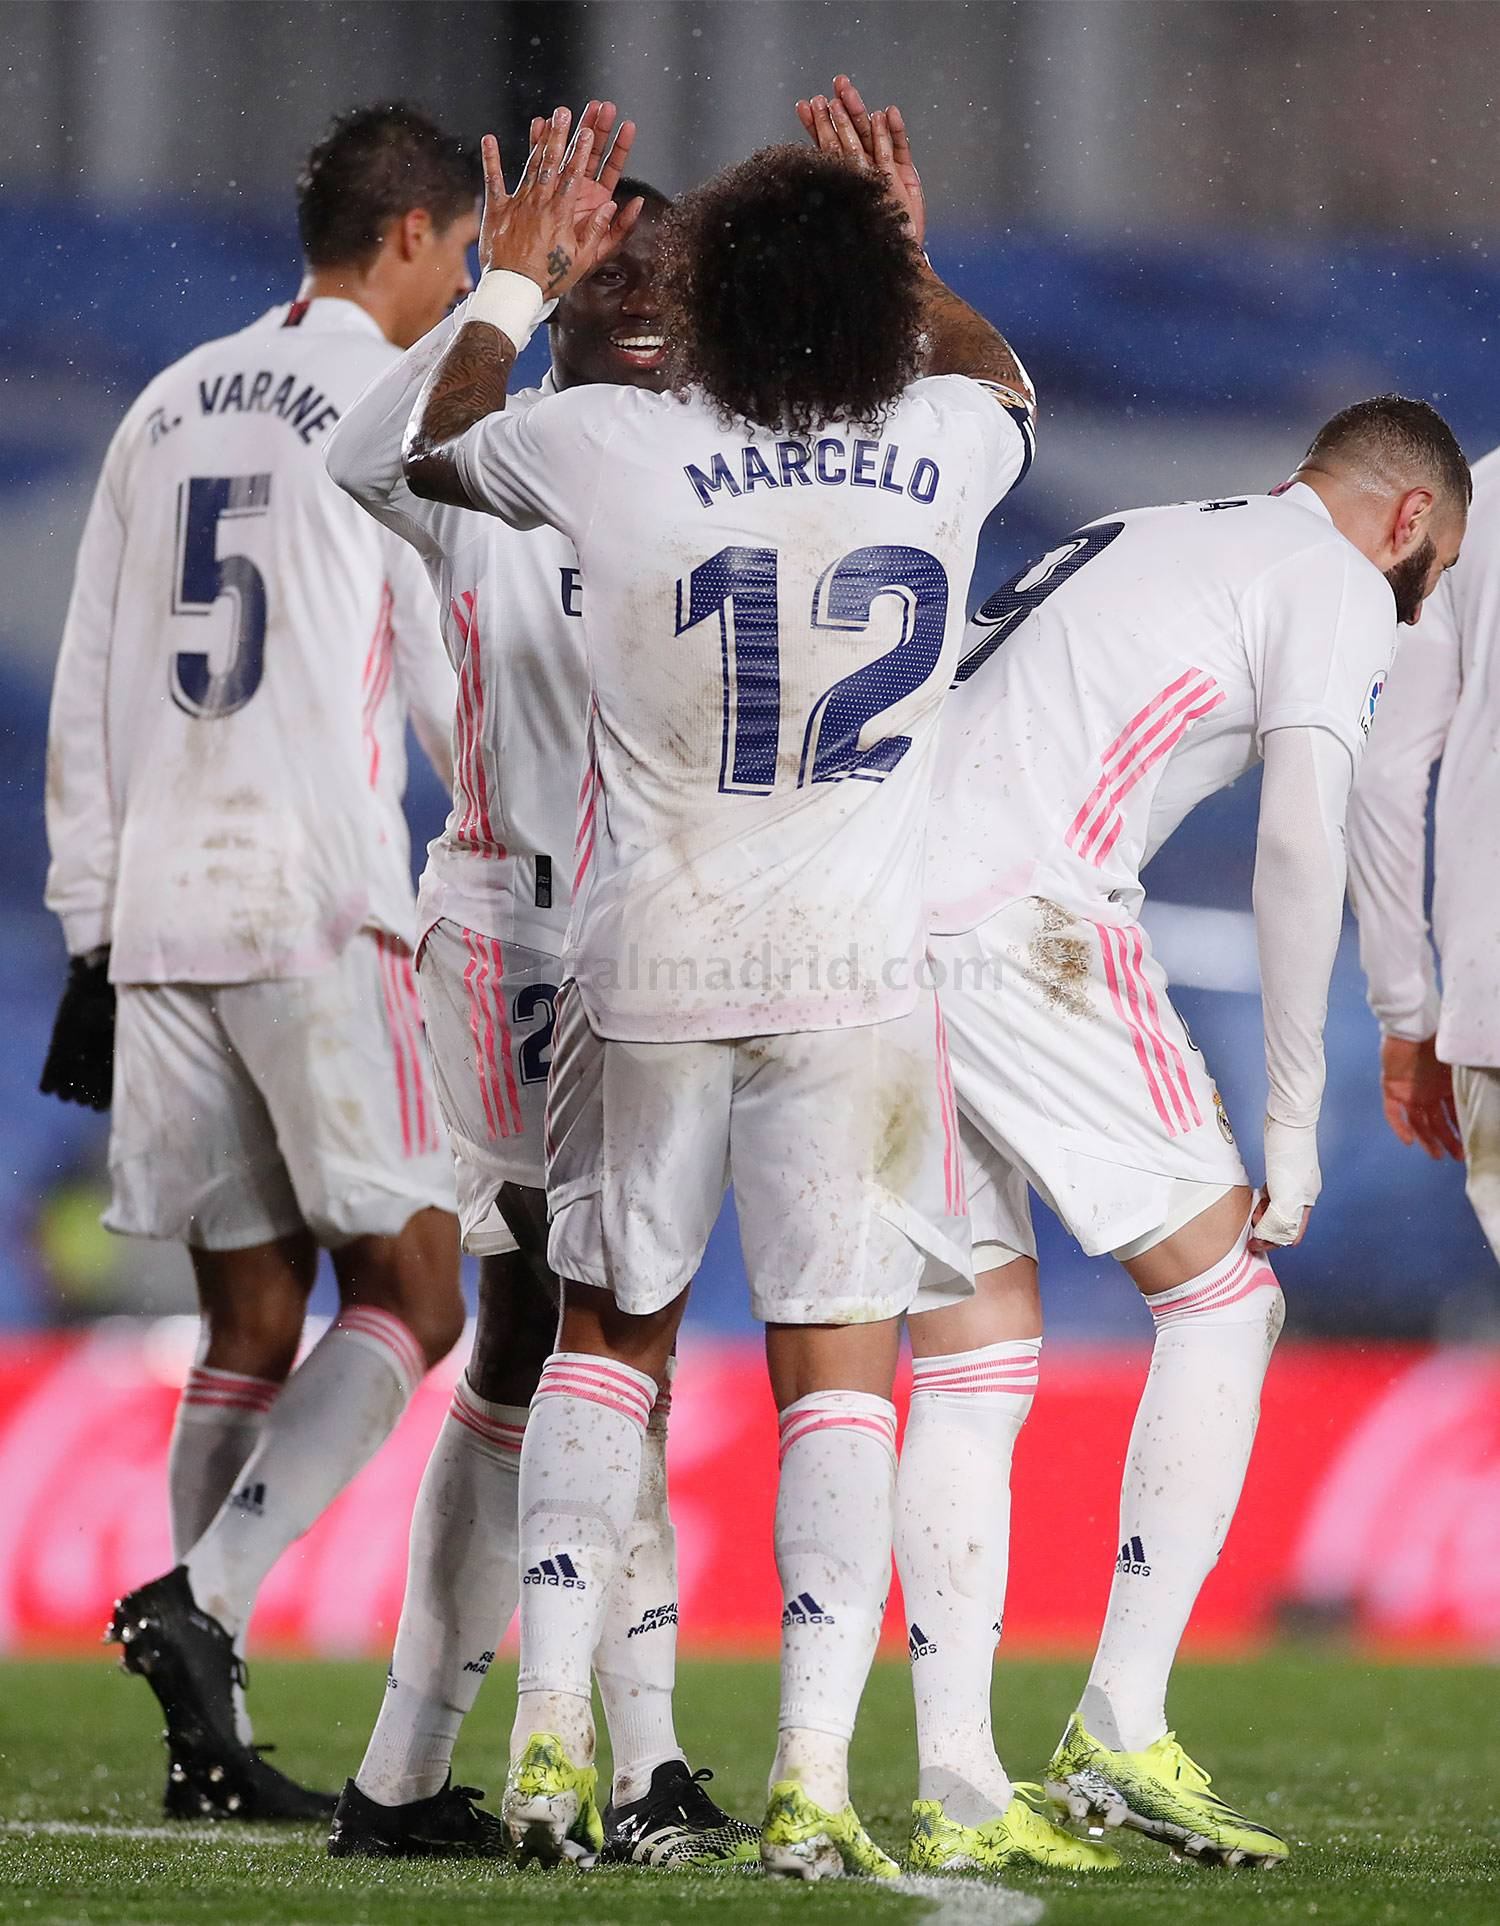 Real Madrid - Real Madrid - Getafe - 09-02-2021